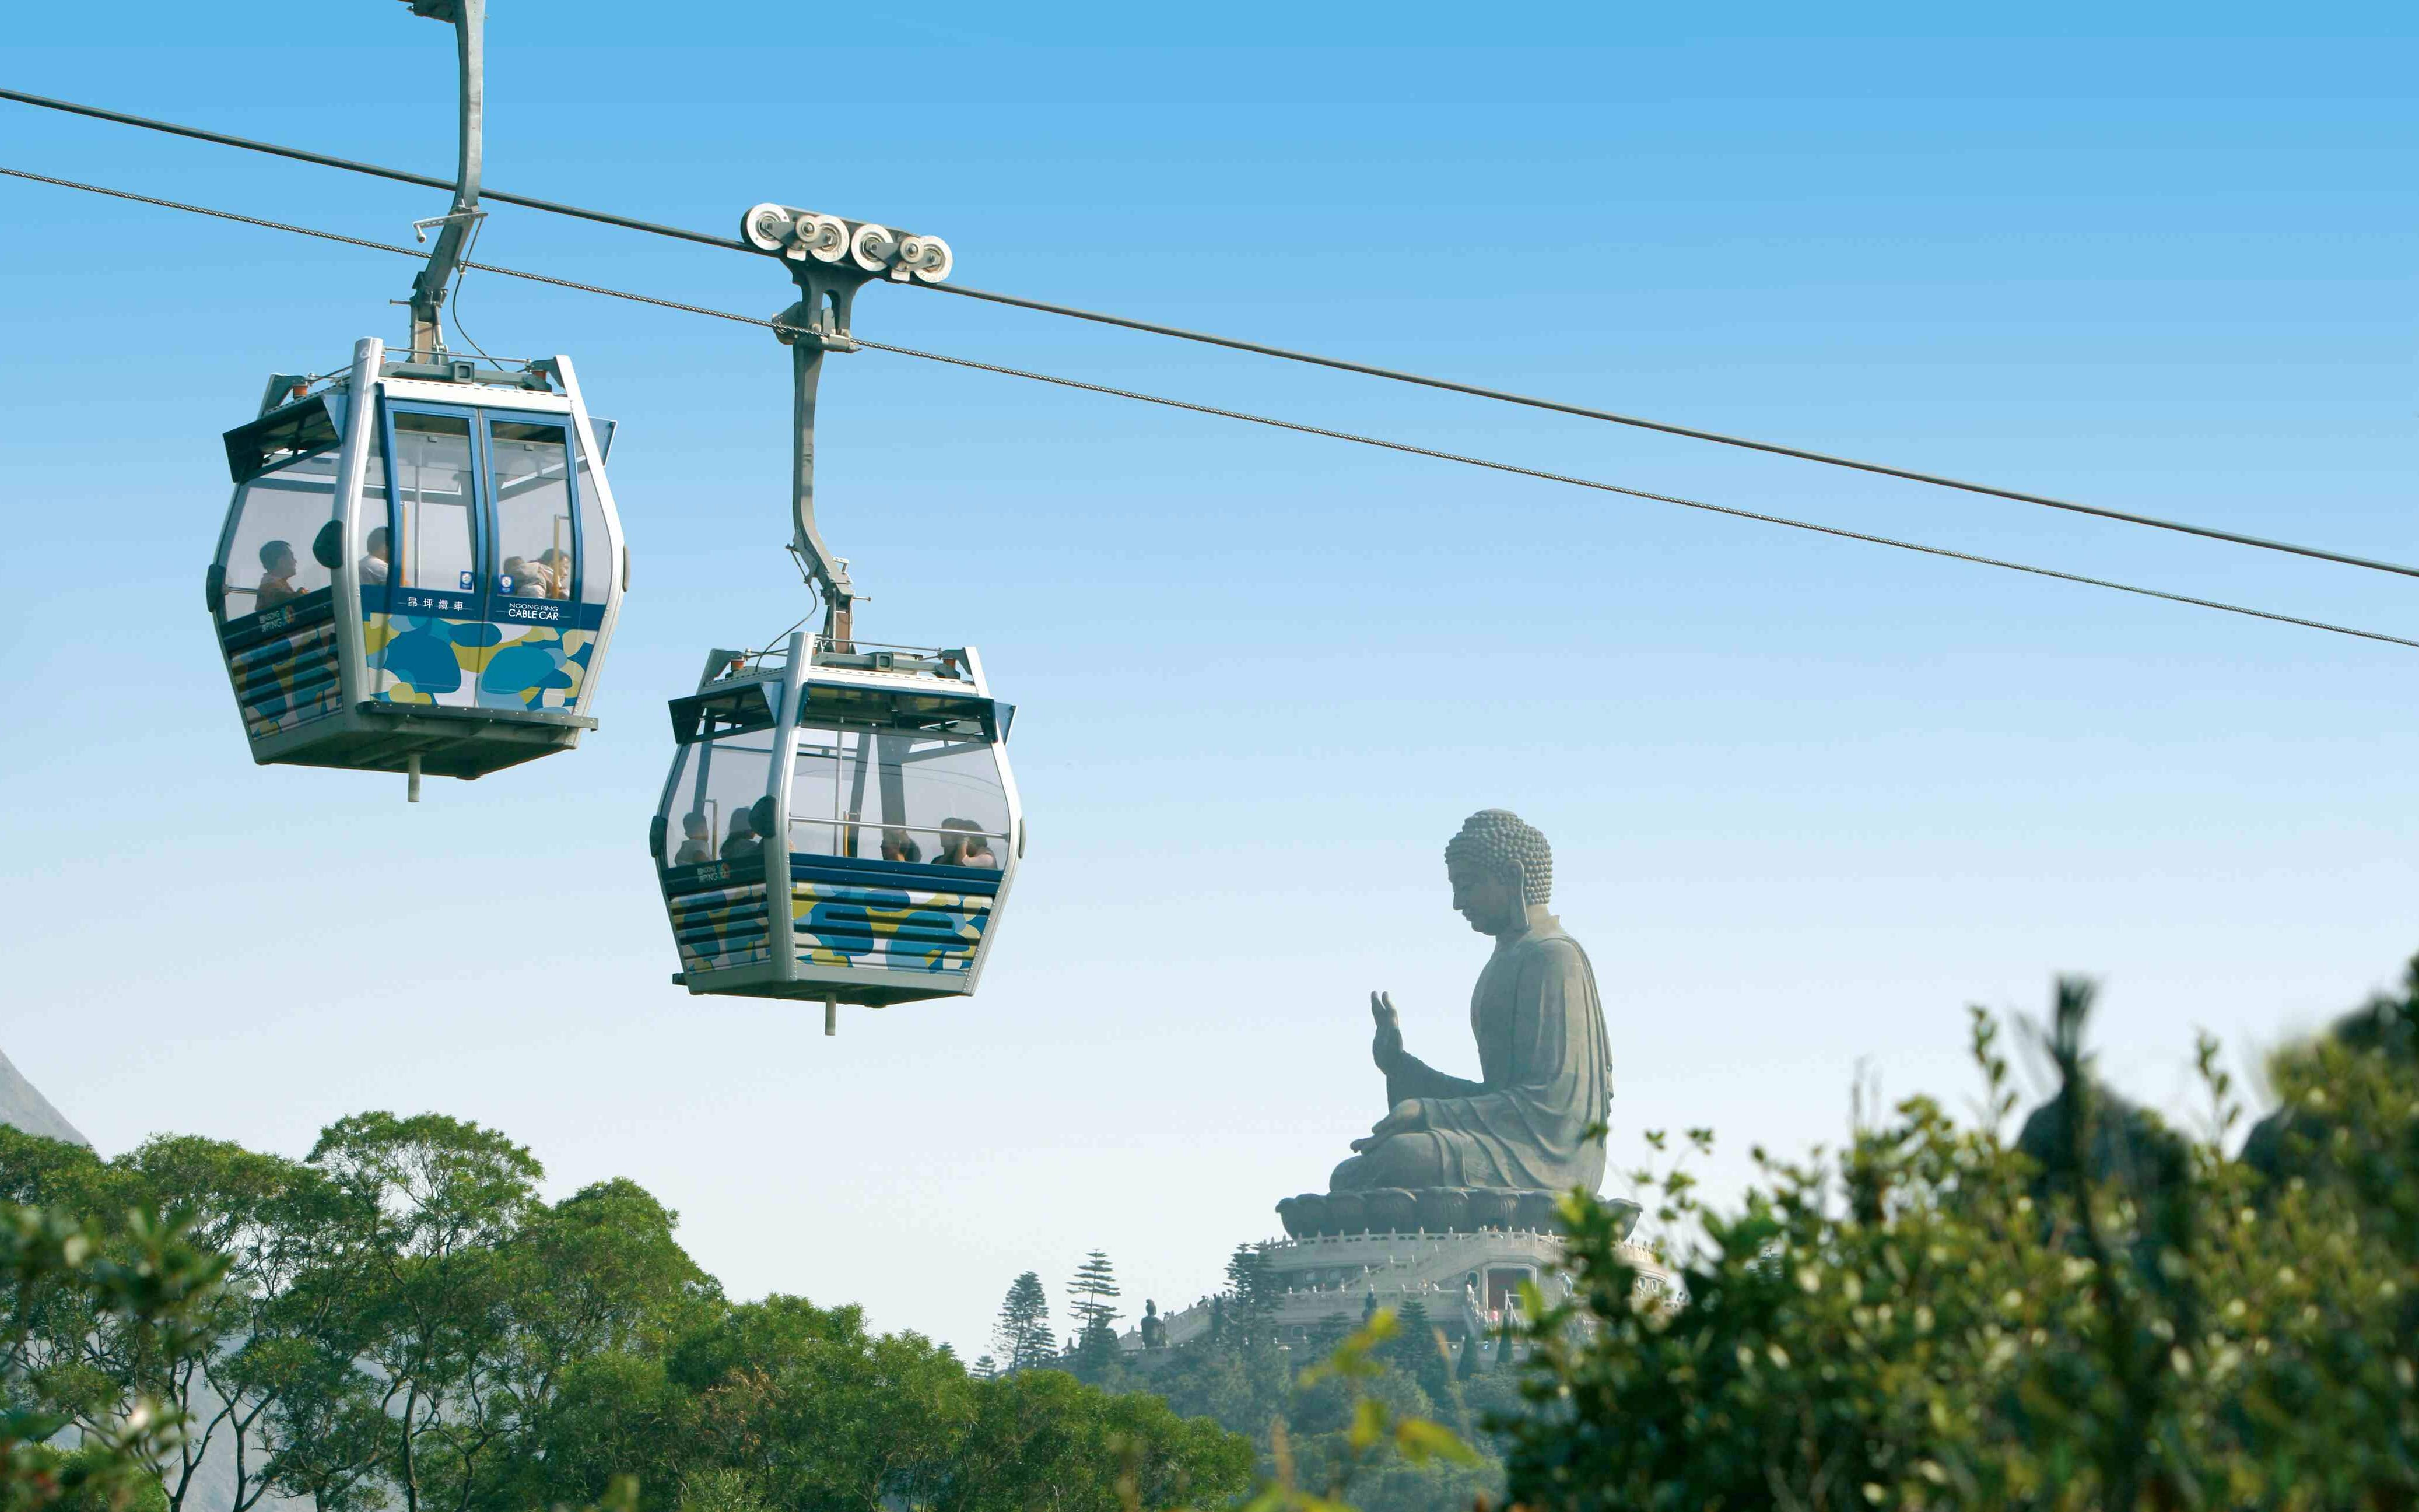 ngong ping cable car experience-1